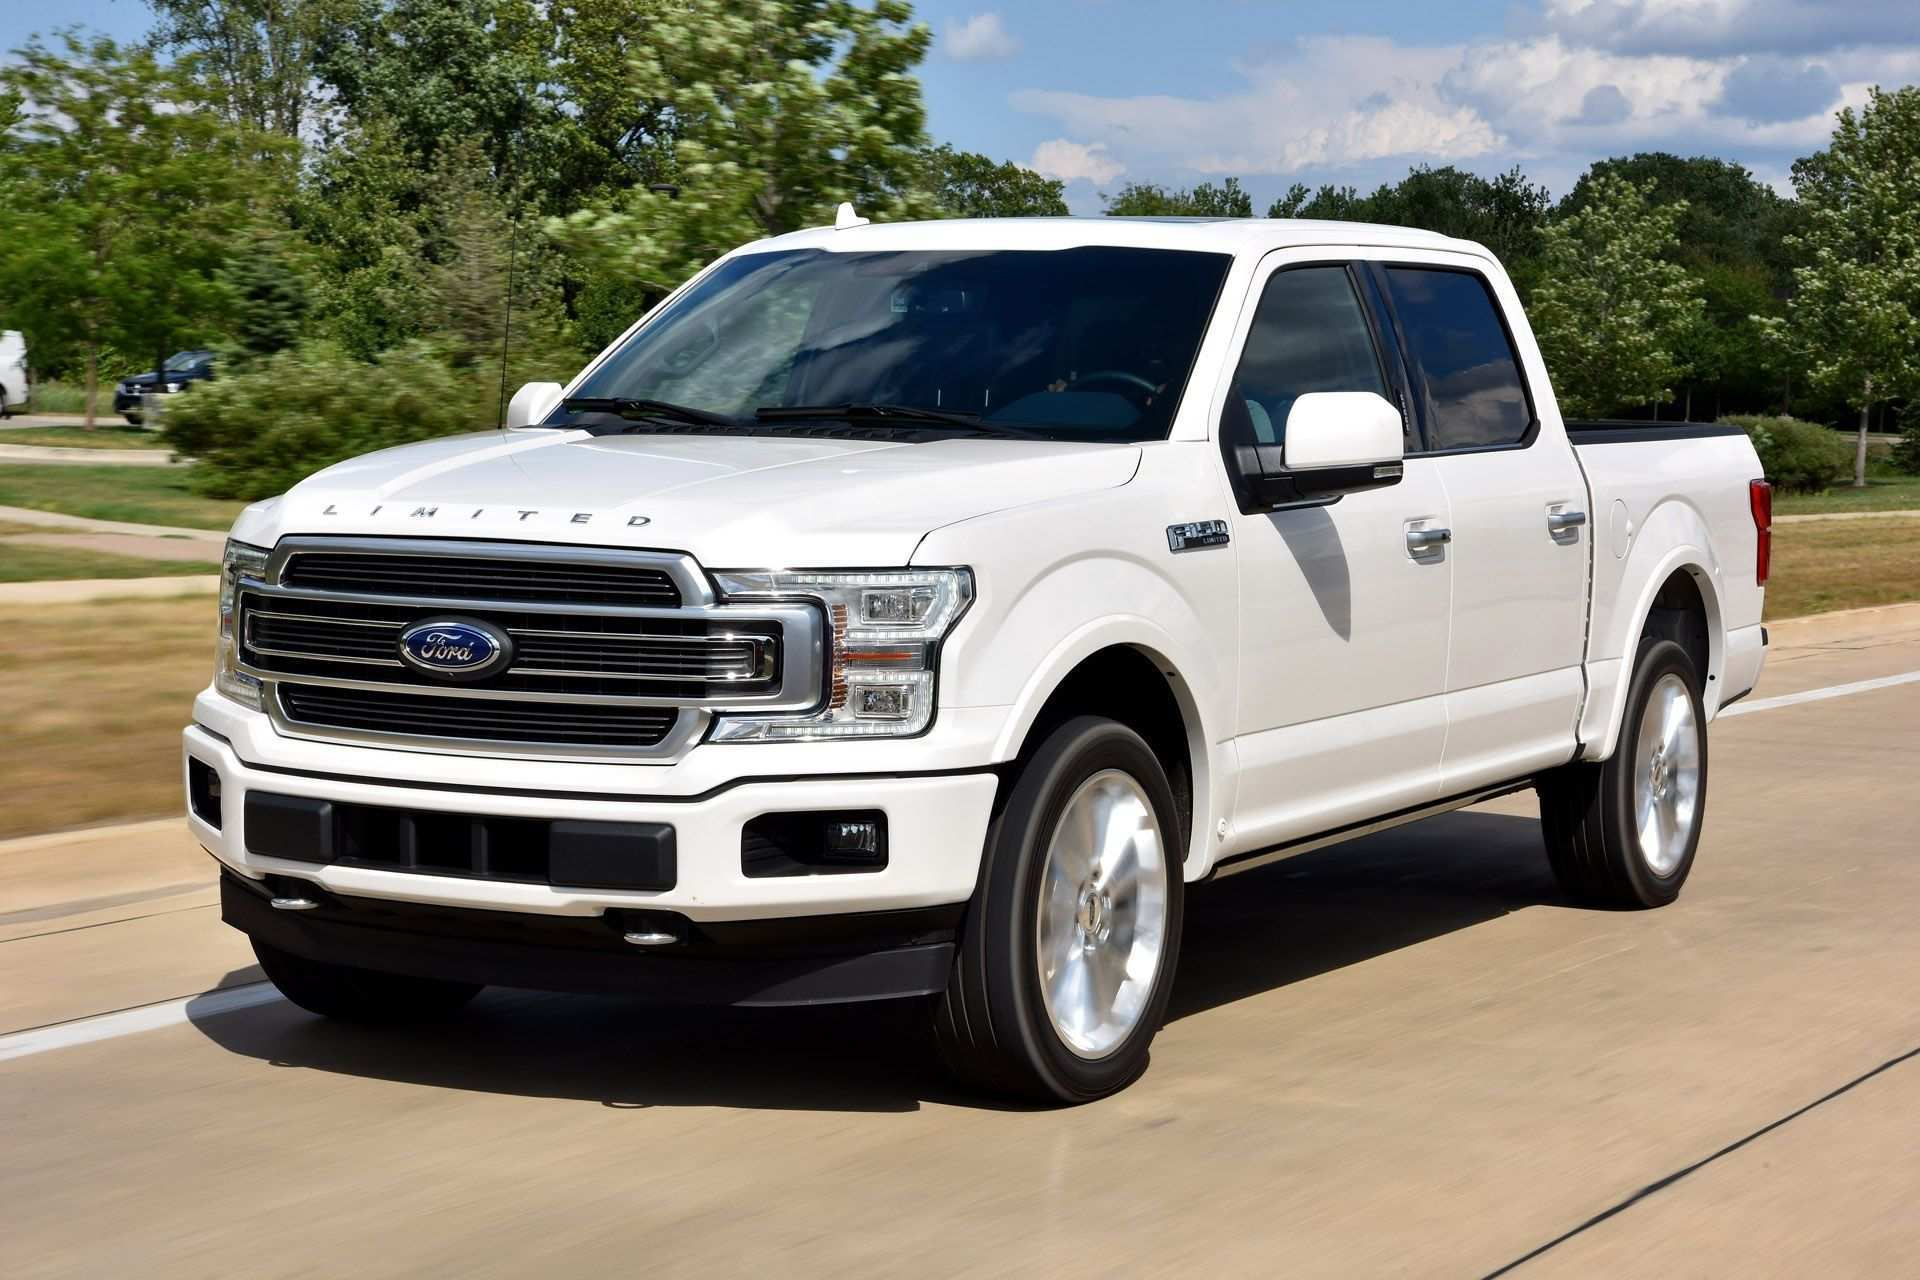 86 All New 2019 Ford F150 Quad Cab First Drive Picture by 2019 Ford F150 Quad Cab First Drive